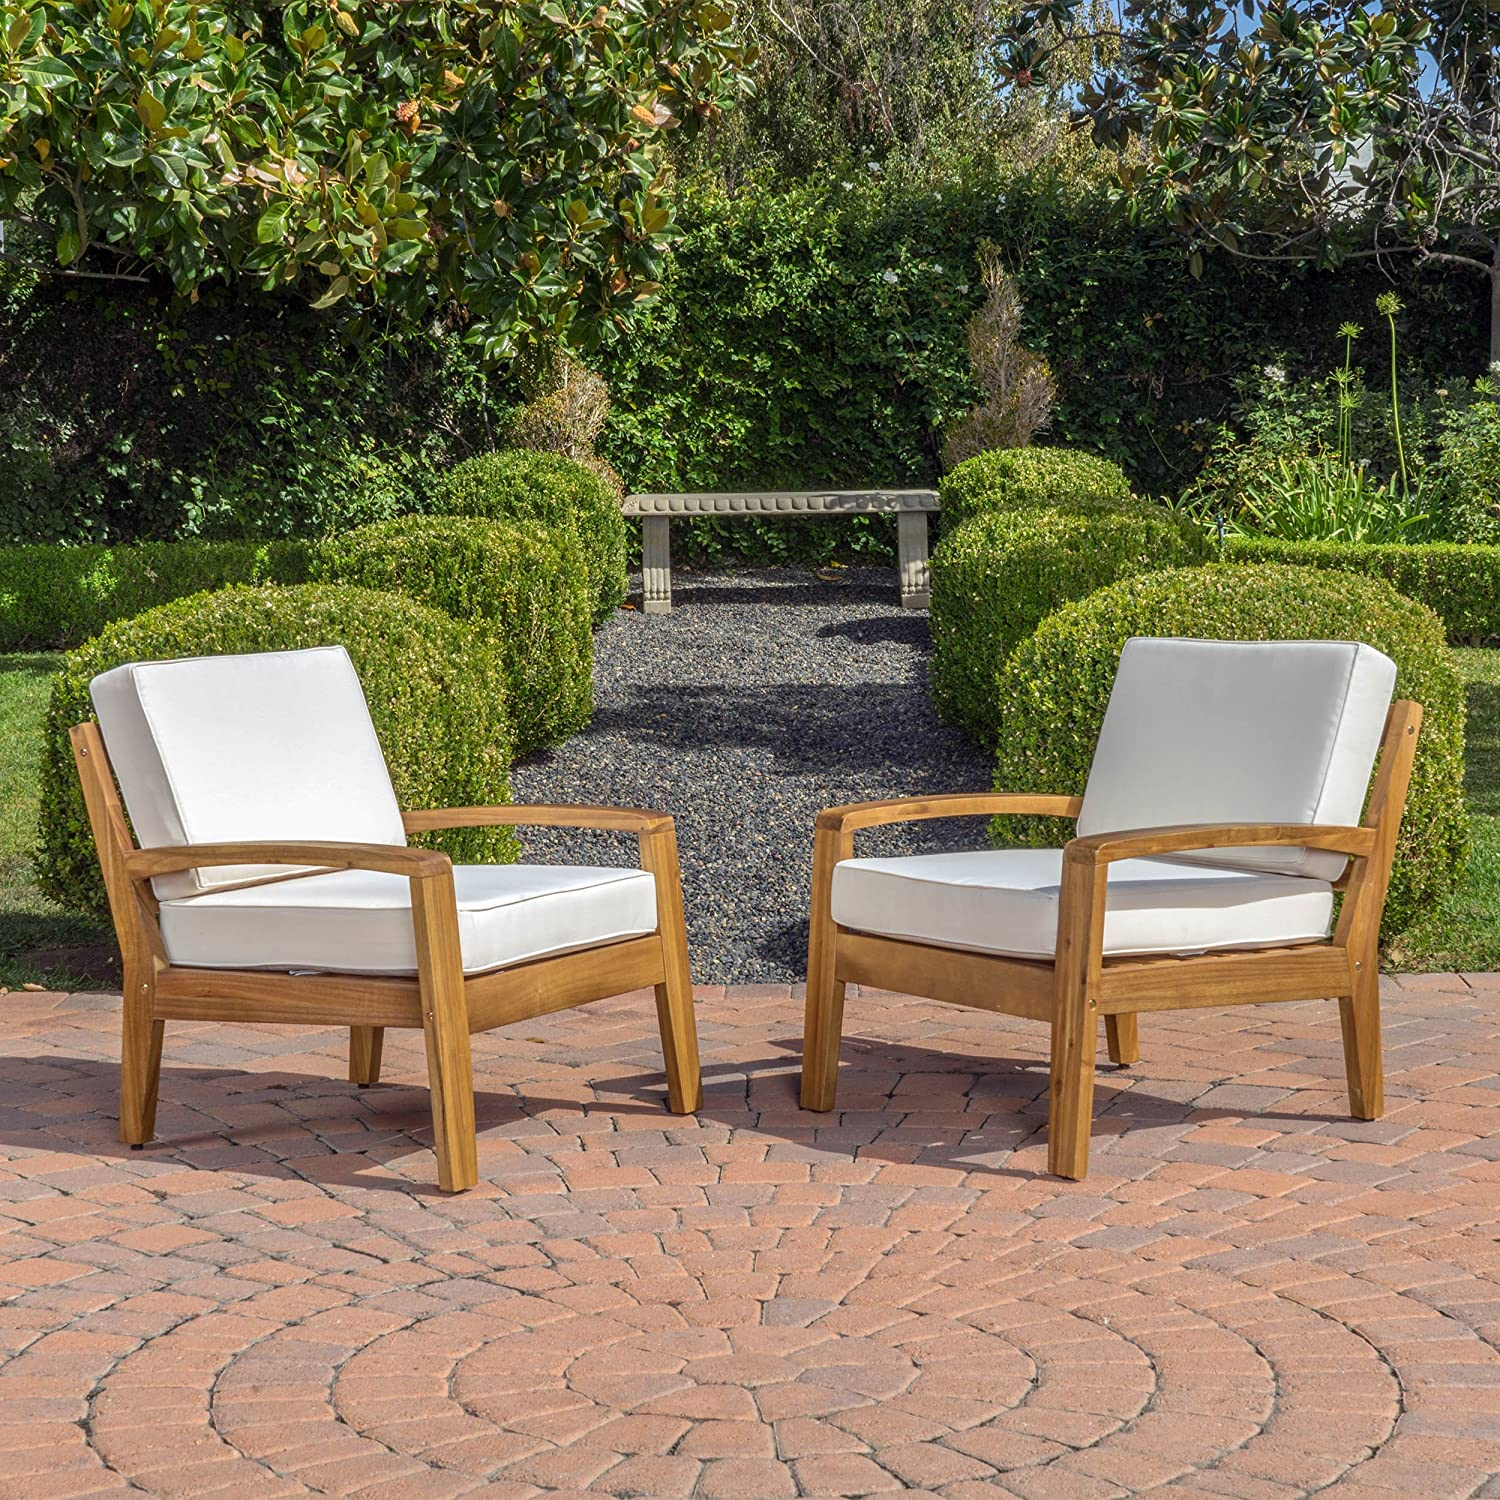 pack patio unfinished chair p bay hampton adirondack stationary wood furniture outdoor chairs